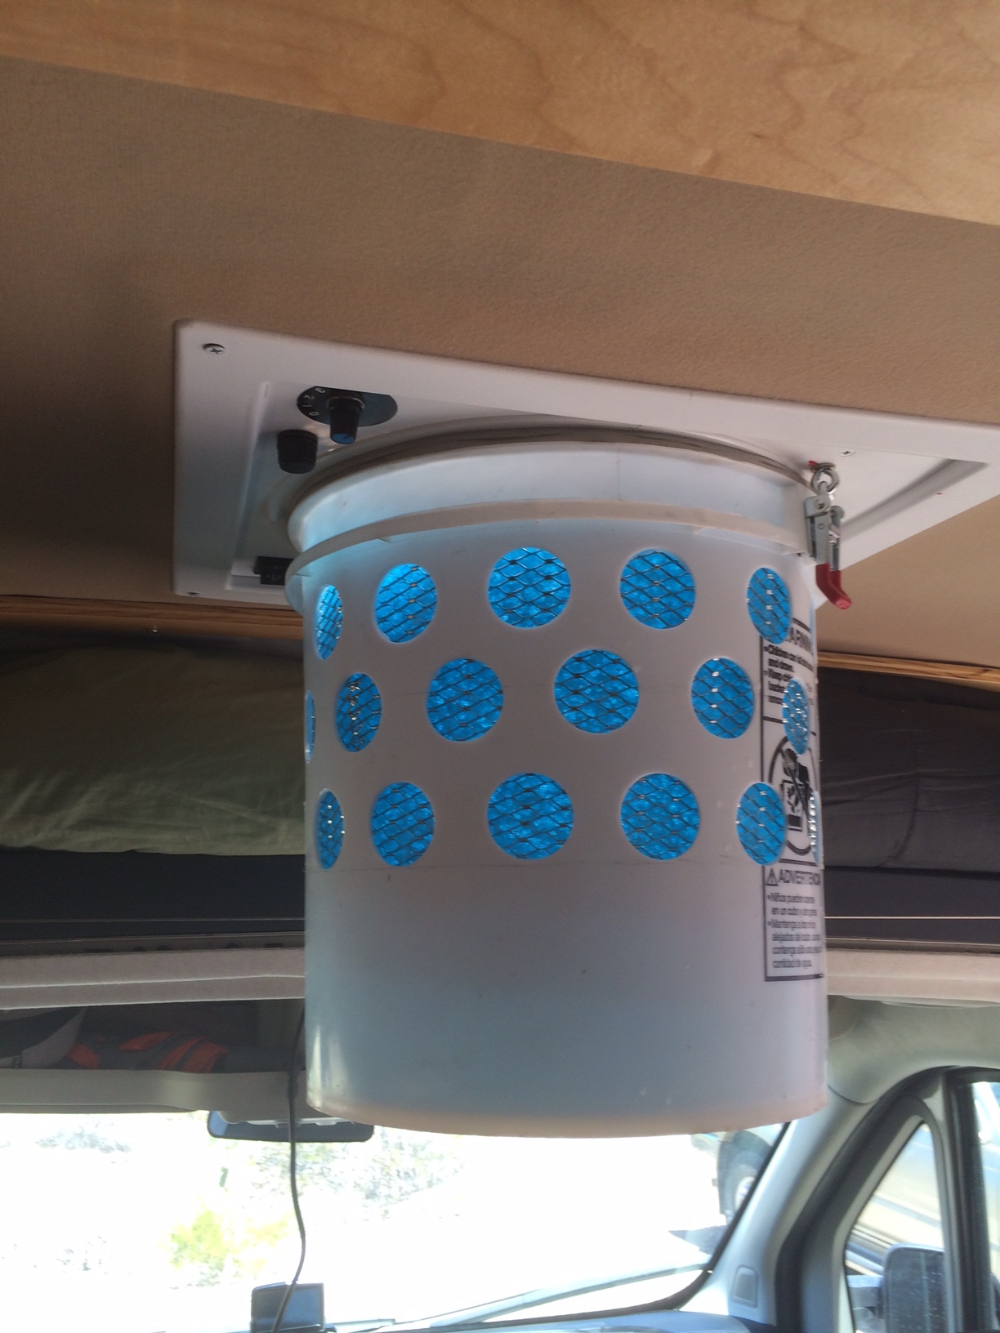 Cooling And Air Conditioning For A Camper Van In 2020 Camper Van